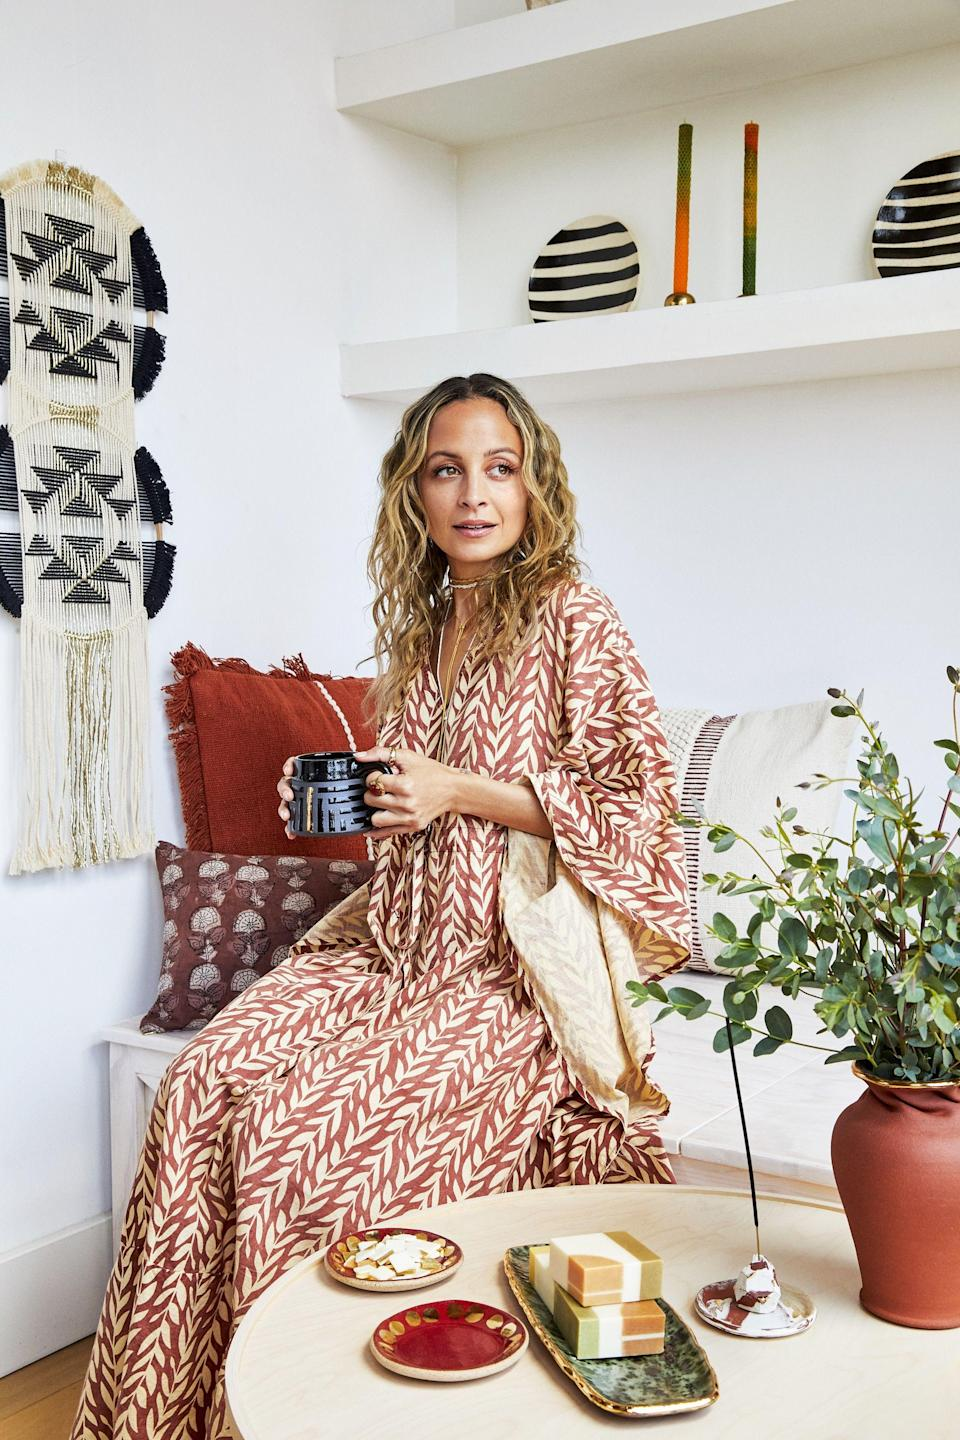 """<p>Since 2008, <strong>Nicole Richie</strong>'s lifestyle brand, <a href=""""https://houseofharlow1960.com/"""" rel=""""nofollow noopener"""" target=""""_blank"""" data-ylk=""""slk:House of Harlow 1960"""" class=""""link rapid-noclick-resp"""">House of Harlow 1960</a>, has given fans a taste of her inspiring free-spirited fashion sense. The line, which includes everything from clothing to jewelry, showcases her affinity for vintage finds layered with the California-cool aesthetic she's known for. But now Nicole, who also happens to be <a href=""""https://www.goodhousekeeping.com/life/entertainment/a27043790/lionel-richie-daughter-son-kids/"""" rel=""""nofollow noopener"""" target=""""_blank"""" data-ylk=""""slk:Lionel Richie"""" class=""""link rapid-noclick-resp""""><strong>Lionel Richie</strong></a>'s oldest daughter, is targeting another set of consumers — design enthusiasts — with a special House of Harlow 1960 home decor and accessories line that's now available to shop on Etsy. <br><br>""""I'm thrilled to finally be putting the 'House' in 'House of Harlow 1960' in such a meaningful way through this dream interiors collection,"""" Nicole says. """"My home has always been an extension of my personal style and I'm so grateful for the opportunity to collaborate with such a talented, diverse group of artisans on the Etsy platform — several of whom are from my home state of California.""""<br> <br>The limited-edition collection includes ceramics, pillows, wall decor and much more — all designed by Nicole and an Etsy maker. The star's line also highlights her passion for supporting <a href=""""https://www.goodhousekeeping.com/life/a33561639/black-owned-businesses/"""" rel=""""nofollow noopener"""" target=""""_blank"""" data-ylk=""""slk:BIPOC-owned businesses"""" class=""""link rapid-noclick-resp"""">BIPOC-owned businesses</a>. Take a look below at some of our favorite items from Etsy's House of Harlow 1960 line and <a href=""""https://go.redirectingat.com?id=74968X1596630&url=https%3A%2F%2Fwww.etsy.com%2Ffeatured%2Fhouseofharlow1960%3Fslug%3Dhouseofharlow1960&sref=https%"""